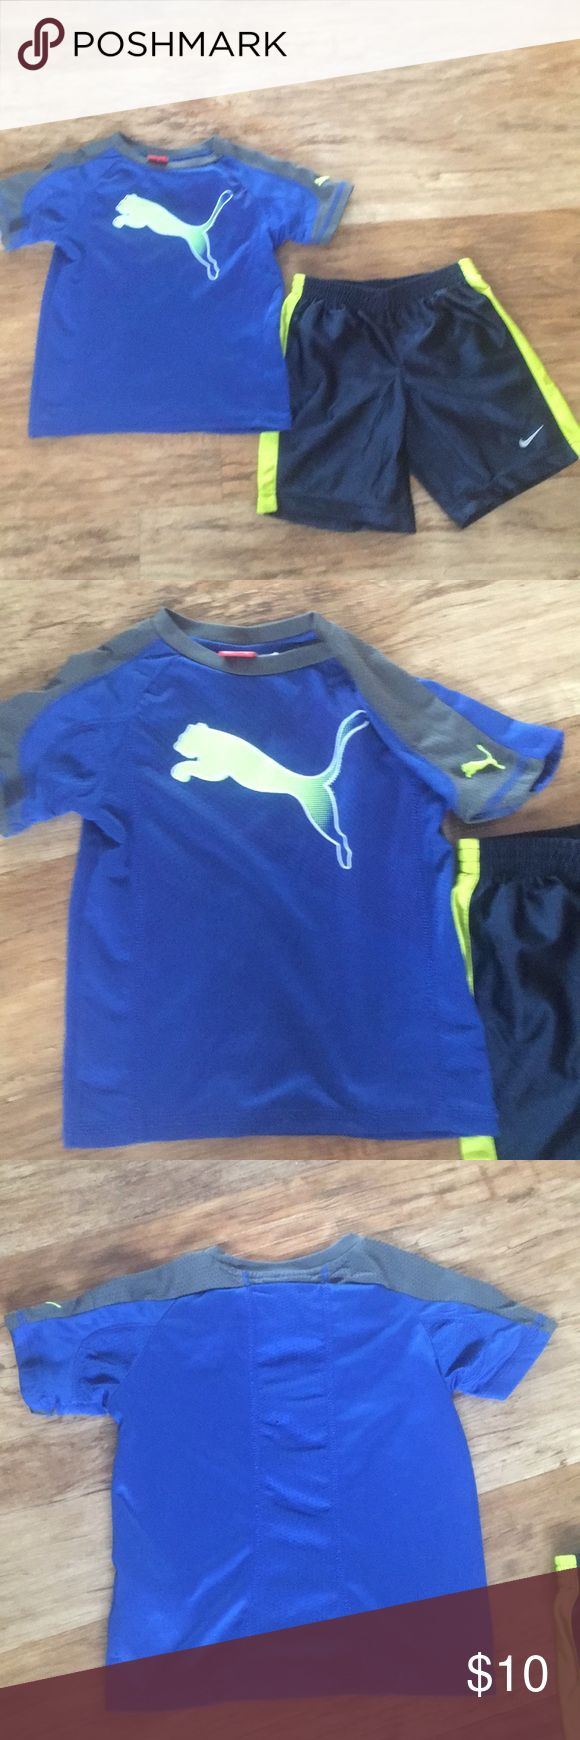 Size 5 Boy non matching Puma shirt and Nike short. Puma size 5 shirt and size 5 Nike short. They do not match and do not go together. Both are very cute and my sons favorite colors. Puma Bottoms Shorts